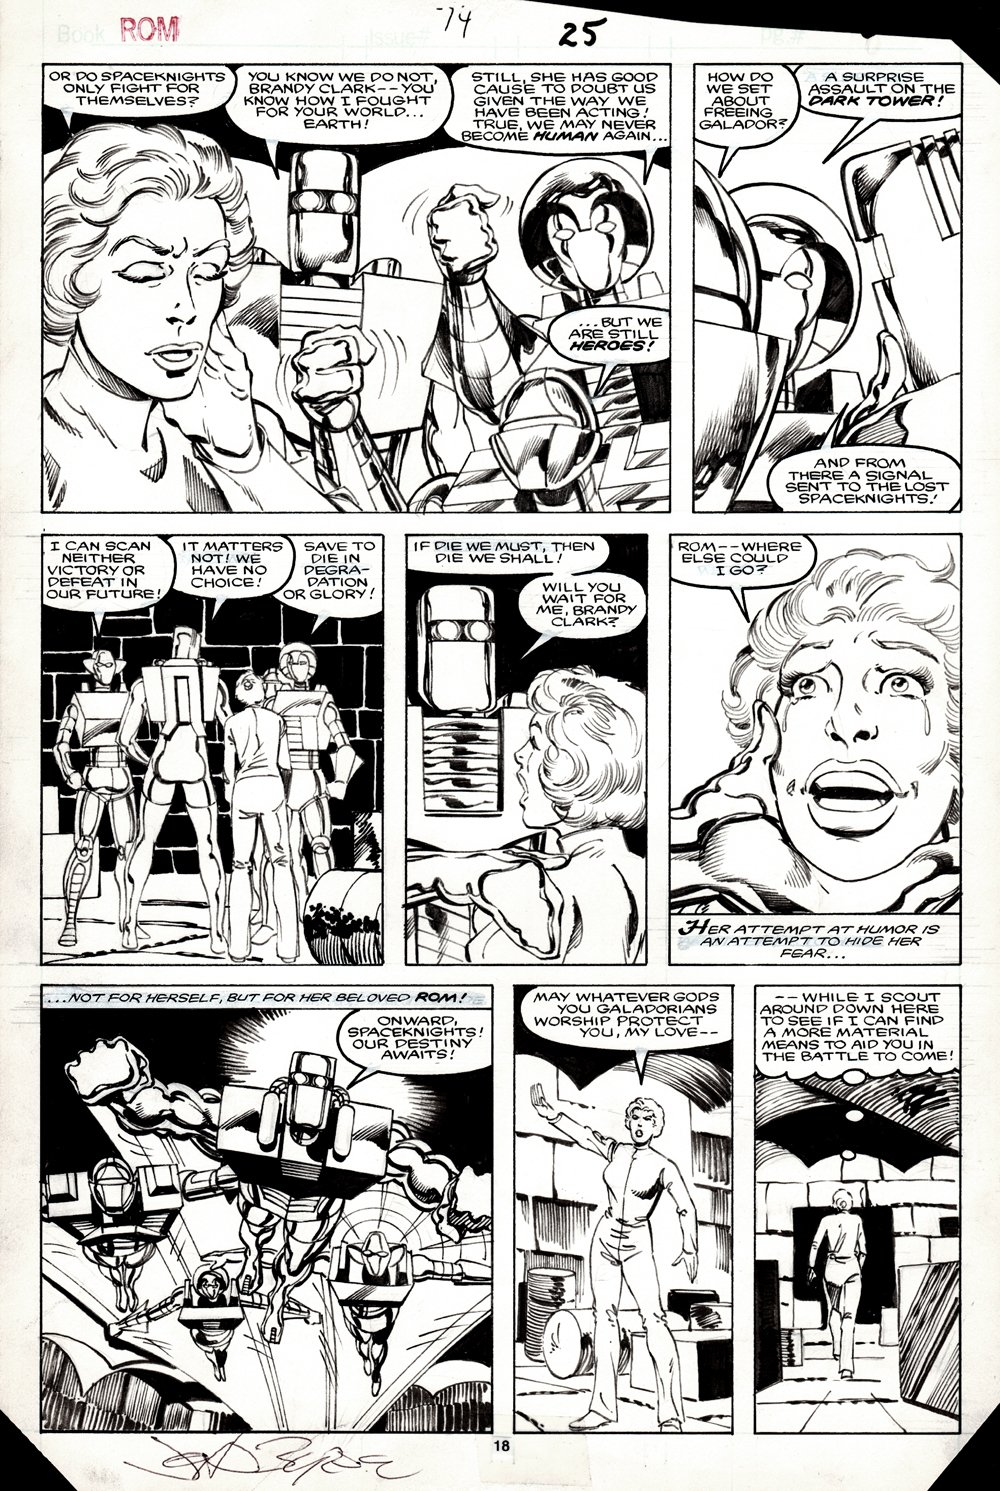 ROM #74 p 18 (SUPERB ONLY DITKO/ BYRNE ROM STORY!) 1985